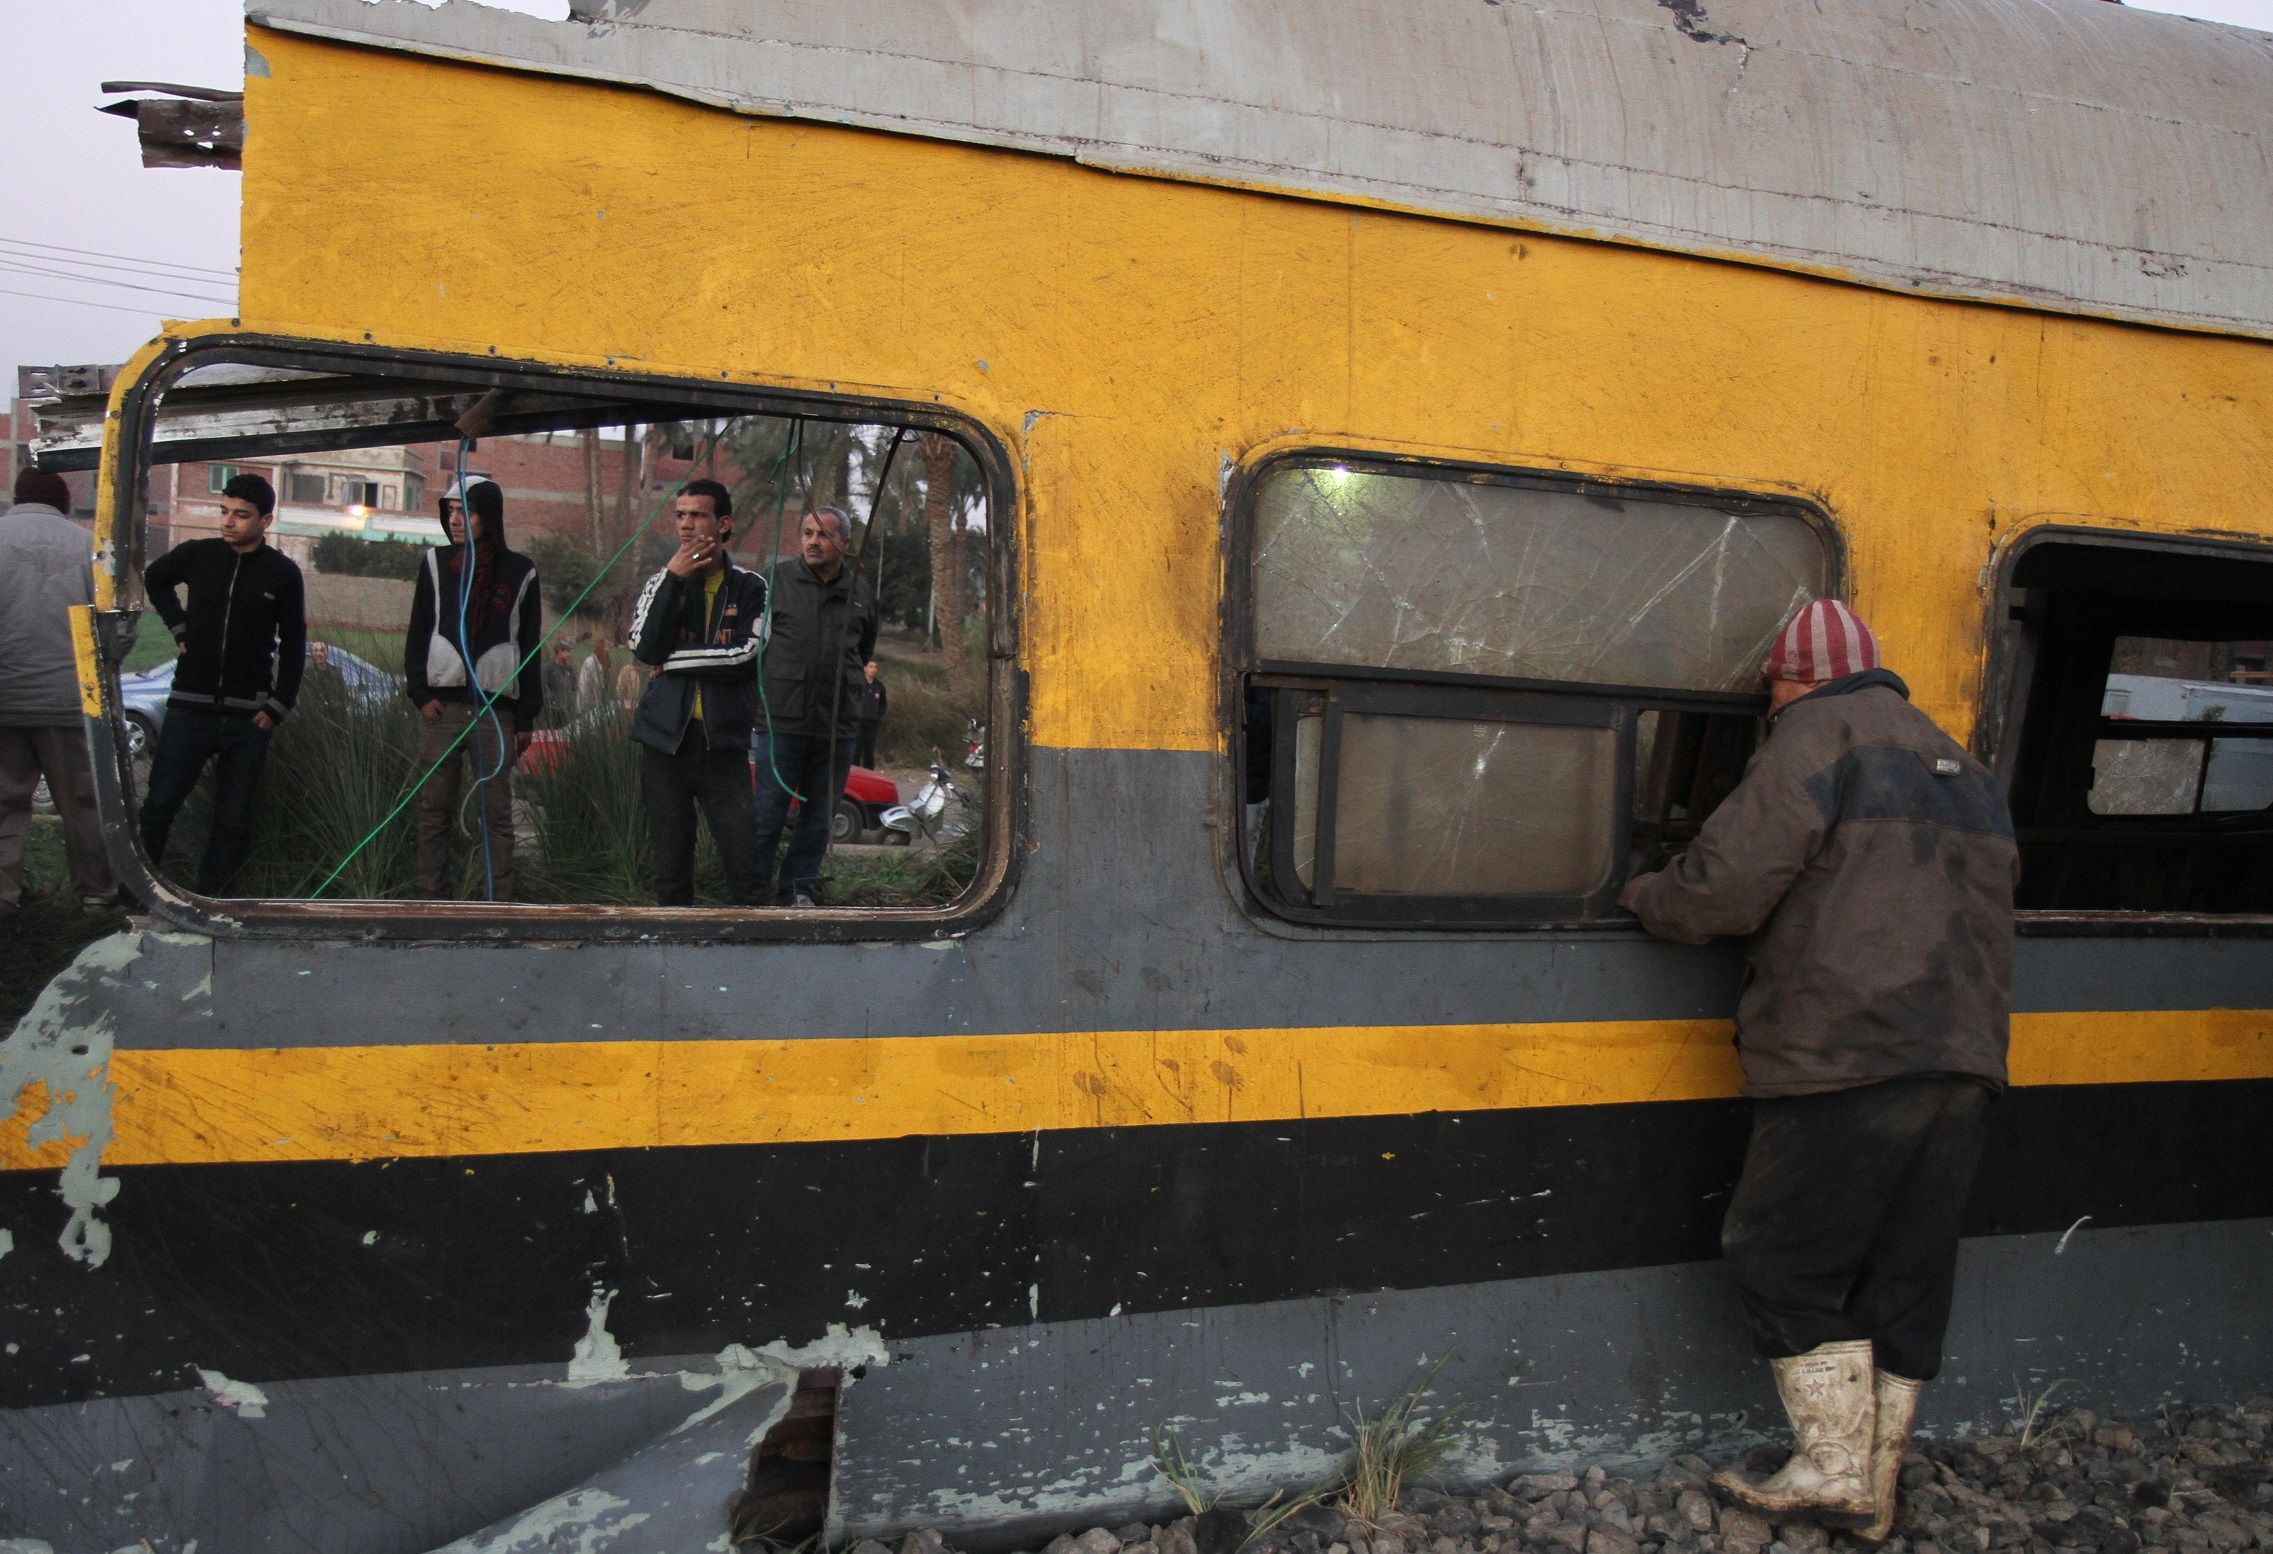 Scores killed, injured in Alexandria train collision